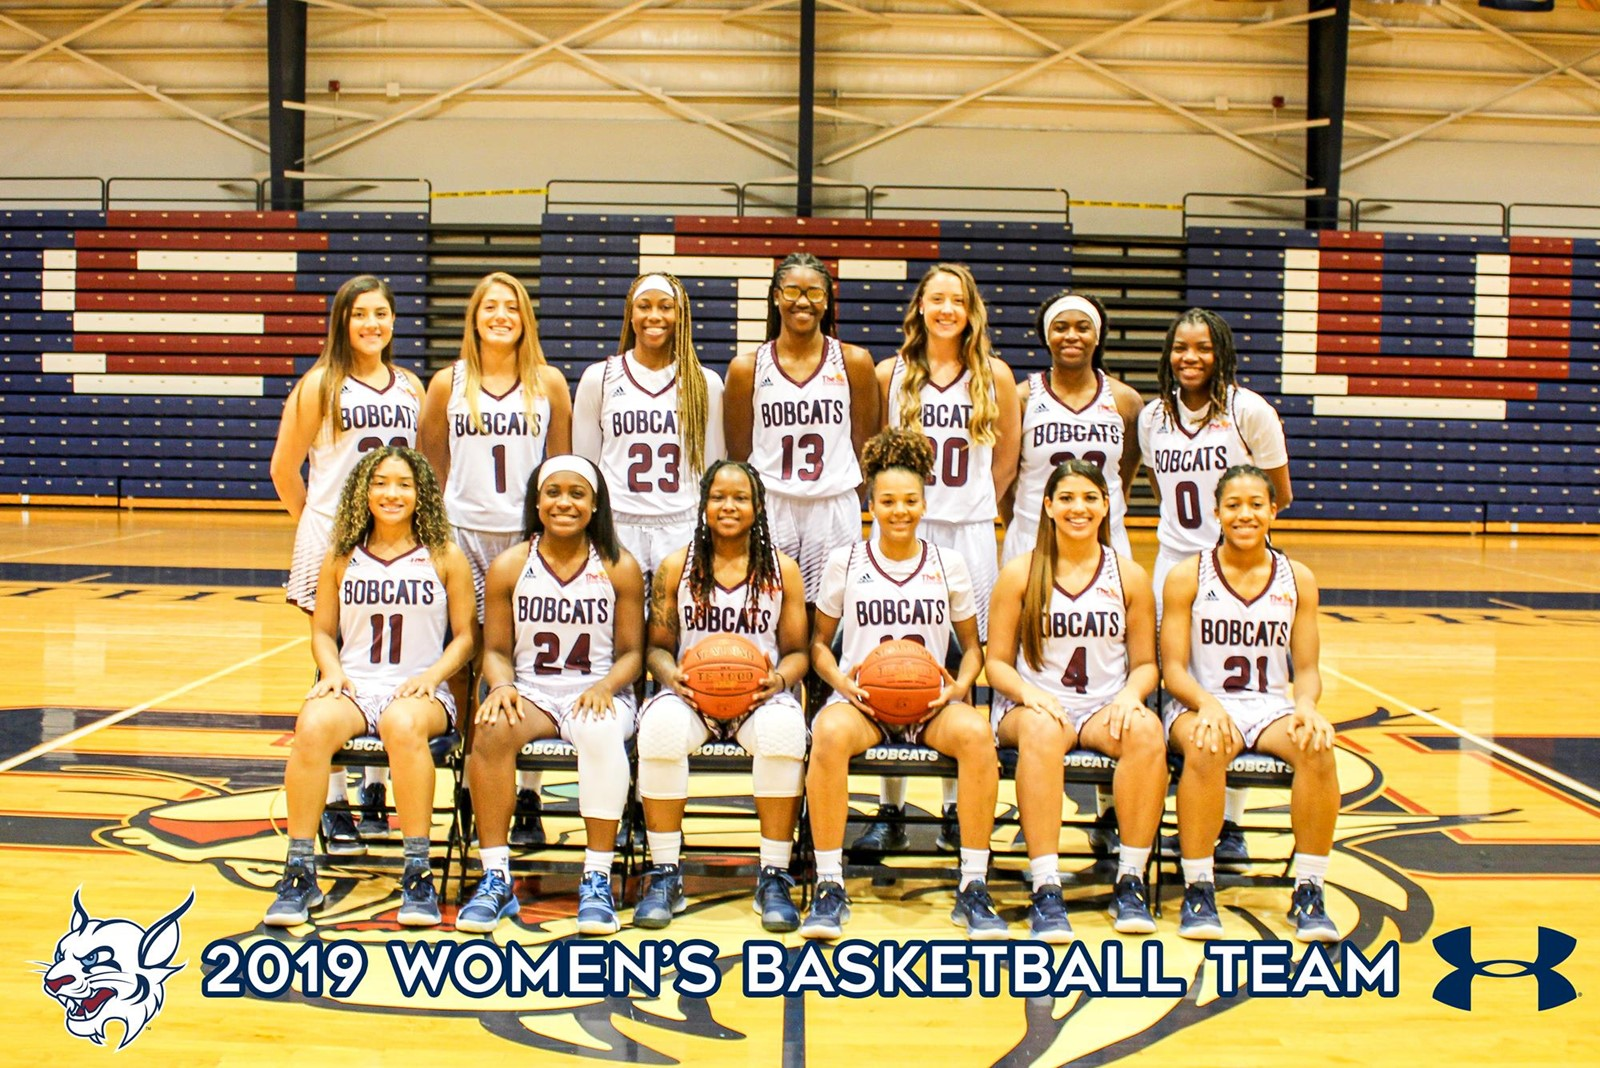 2019 2020 Women S Basketball Roster St Thomas University